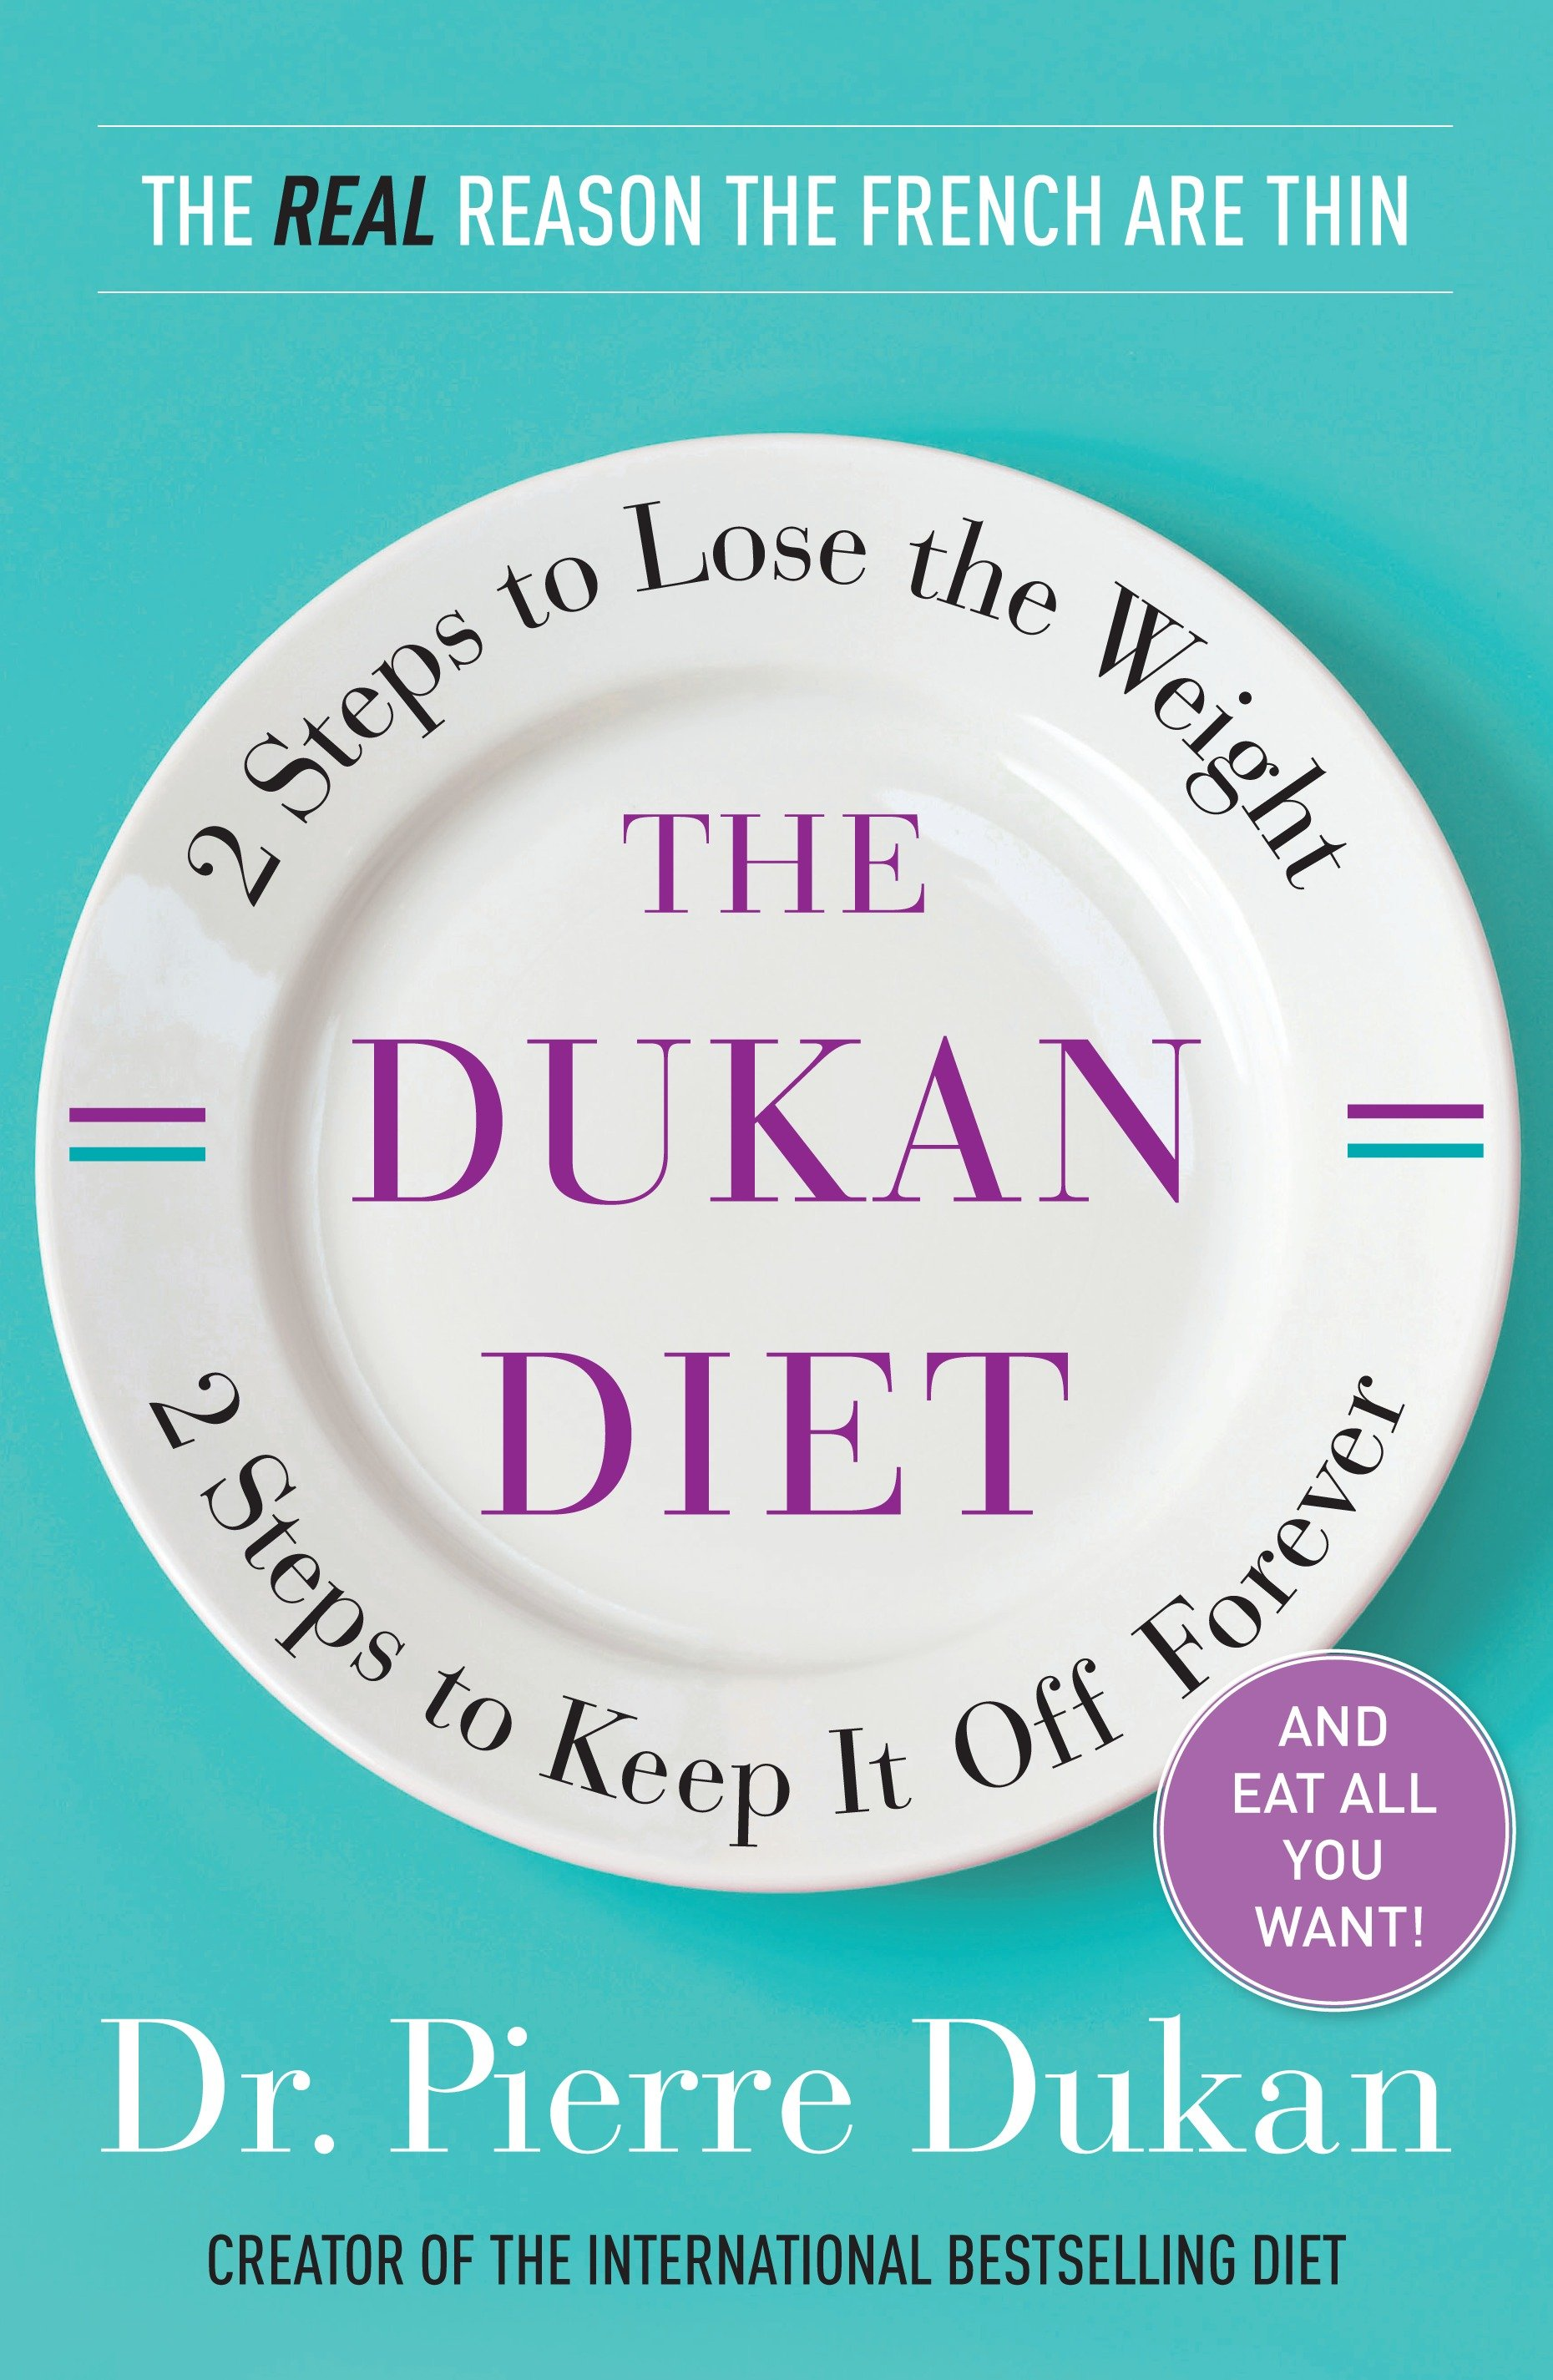 The Dukan diet cover image